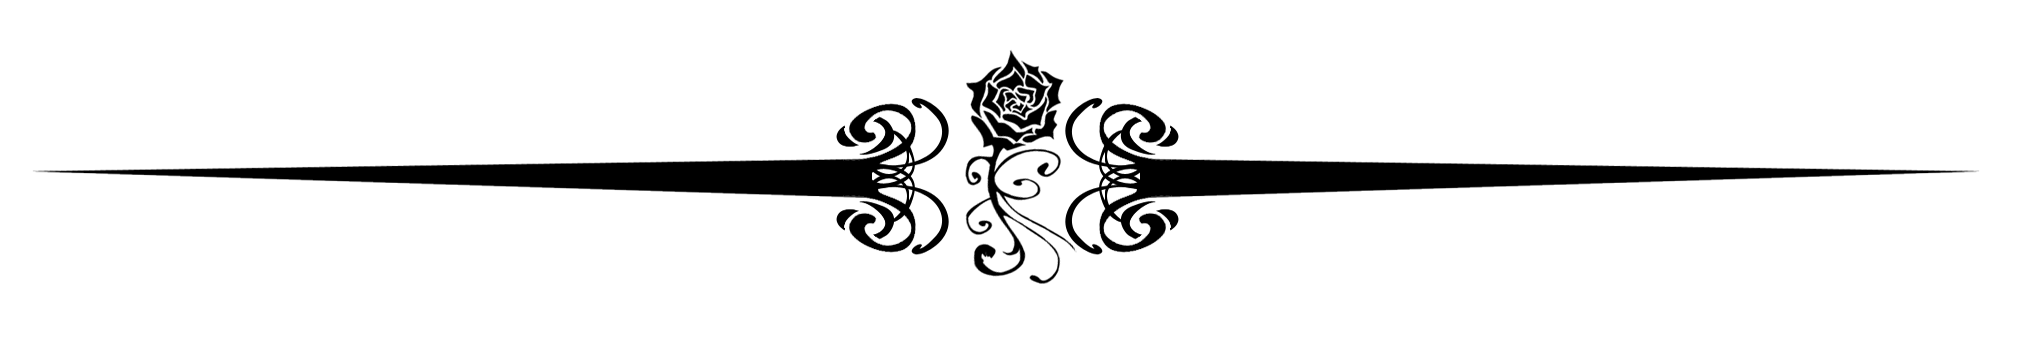 Horizontal line png. Collection of straight